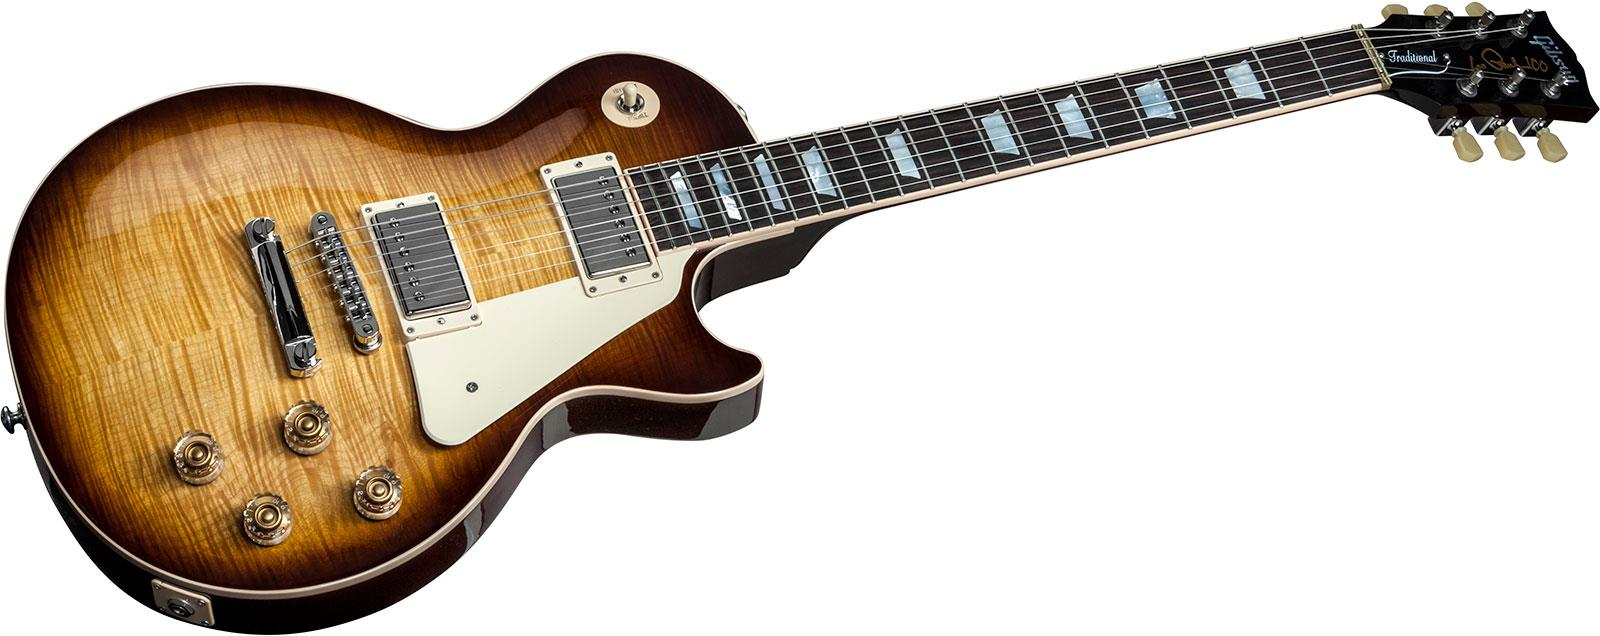 gibson les paul traditional 2015 tobacco sunburst keymusic. Black Bedroom Furniture Sets. Home Design Ideas